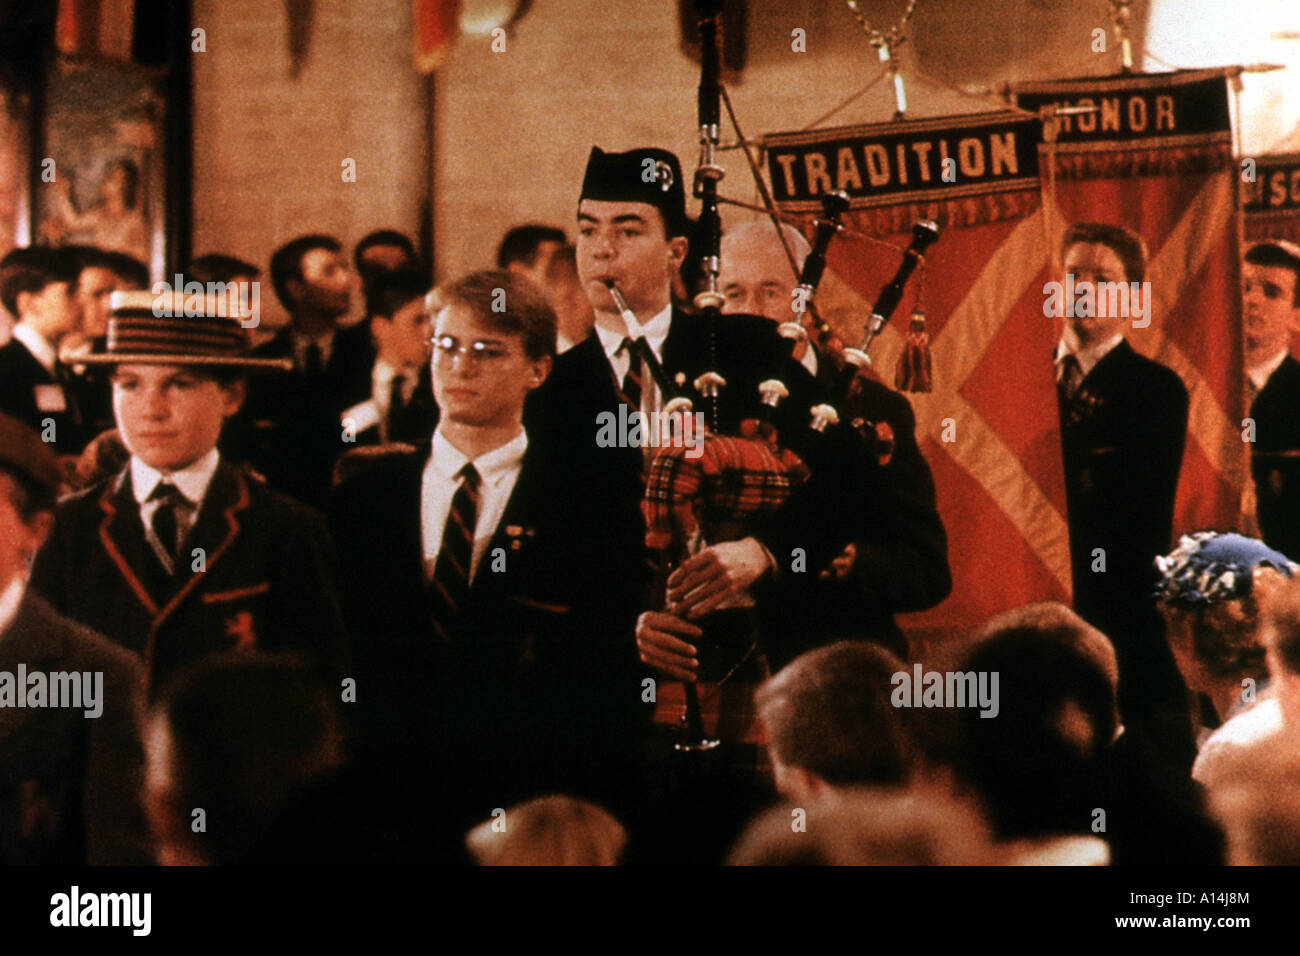 Dead Poets Society 1989 Peter Weir Stock Photo Alamy